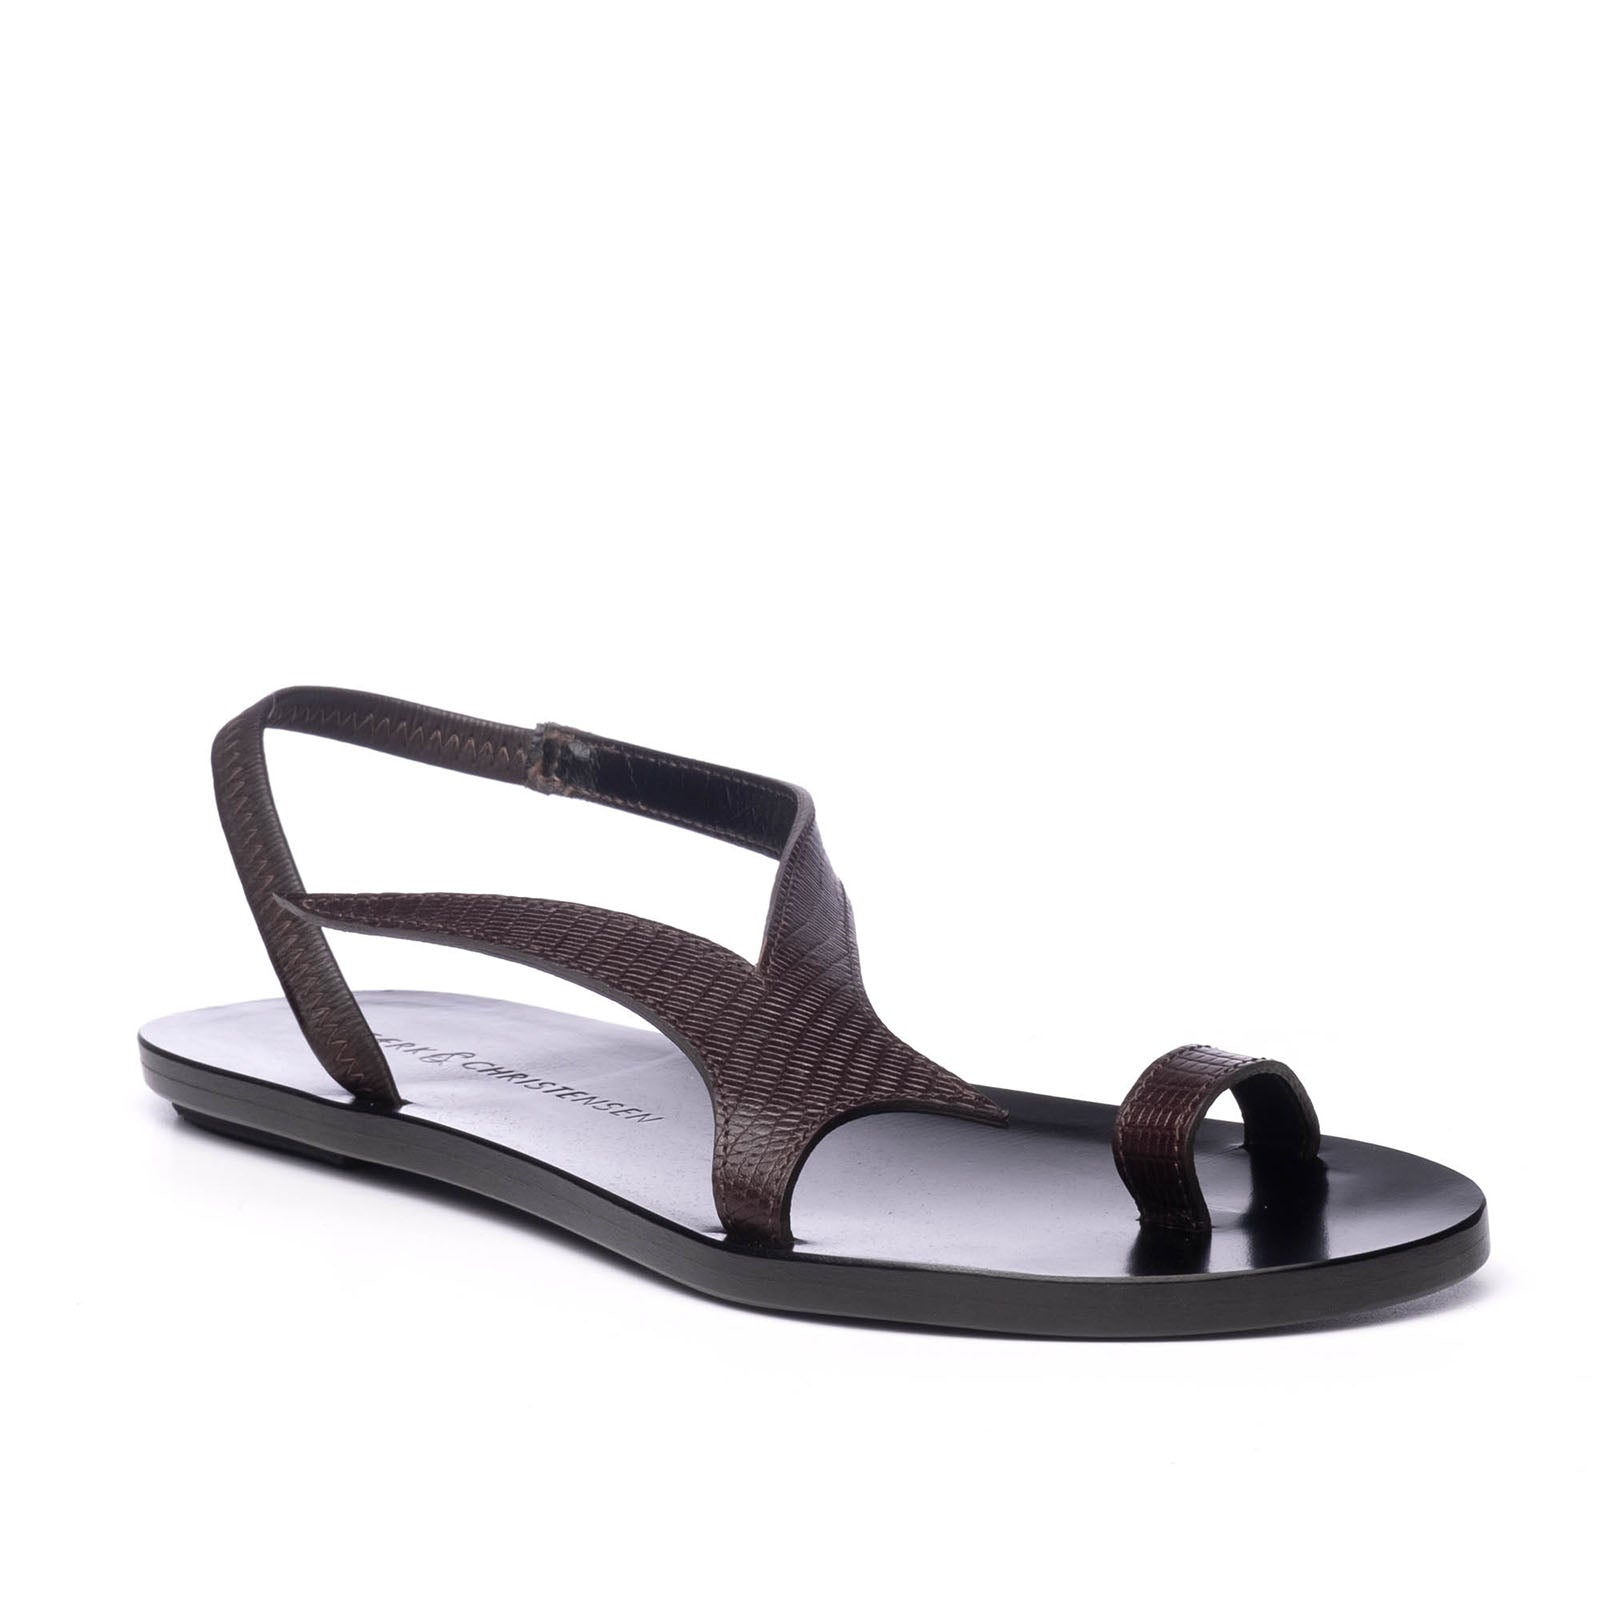 THE SWALLOW SANDAL